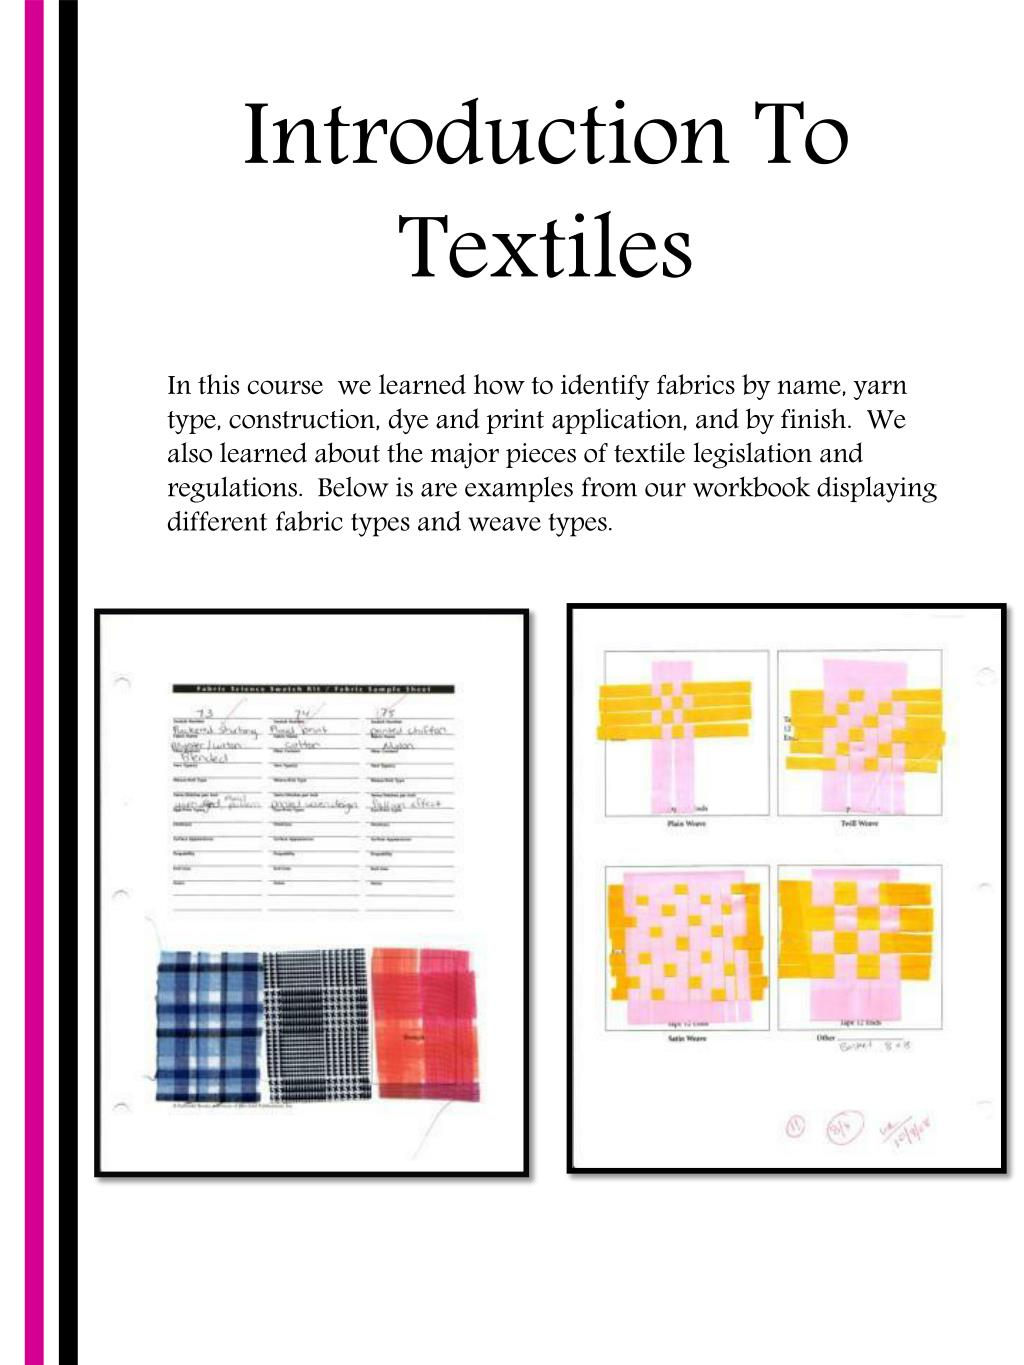 Introduction To Textiles